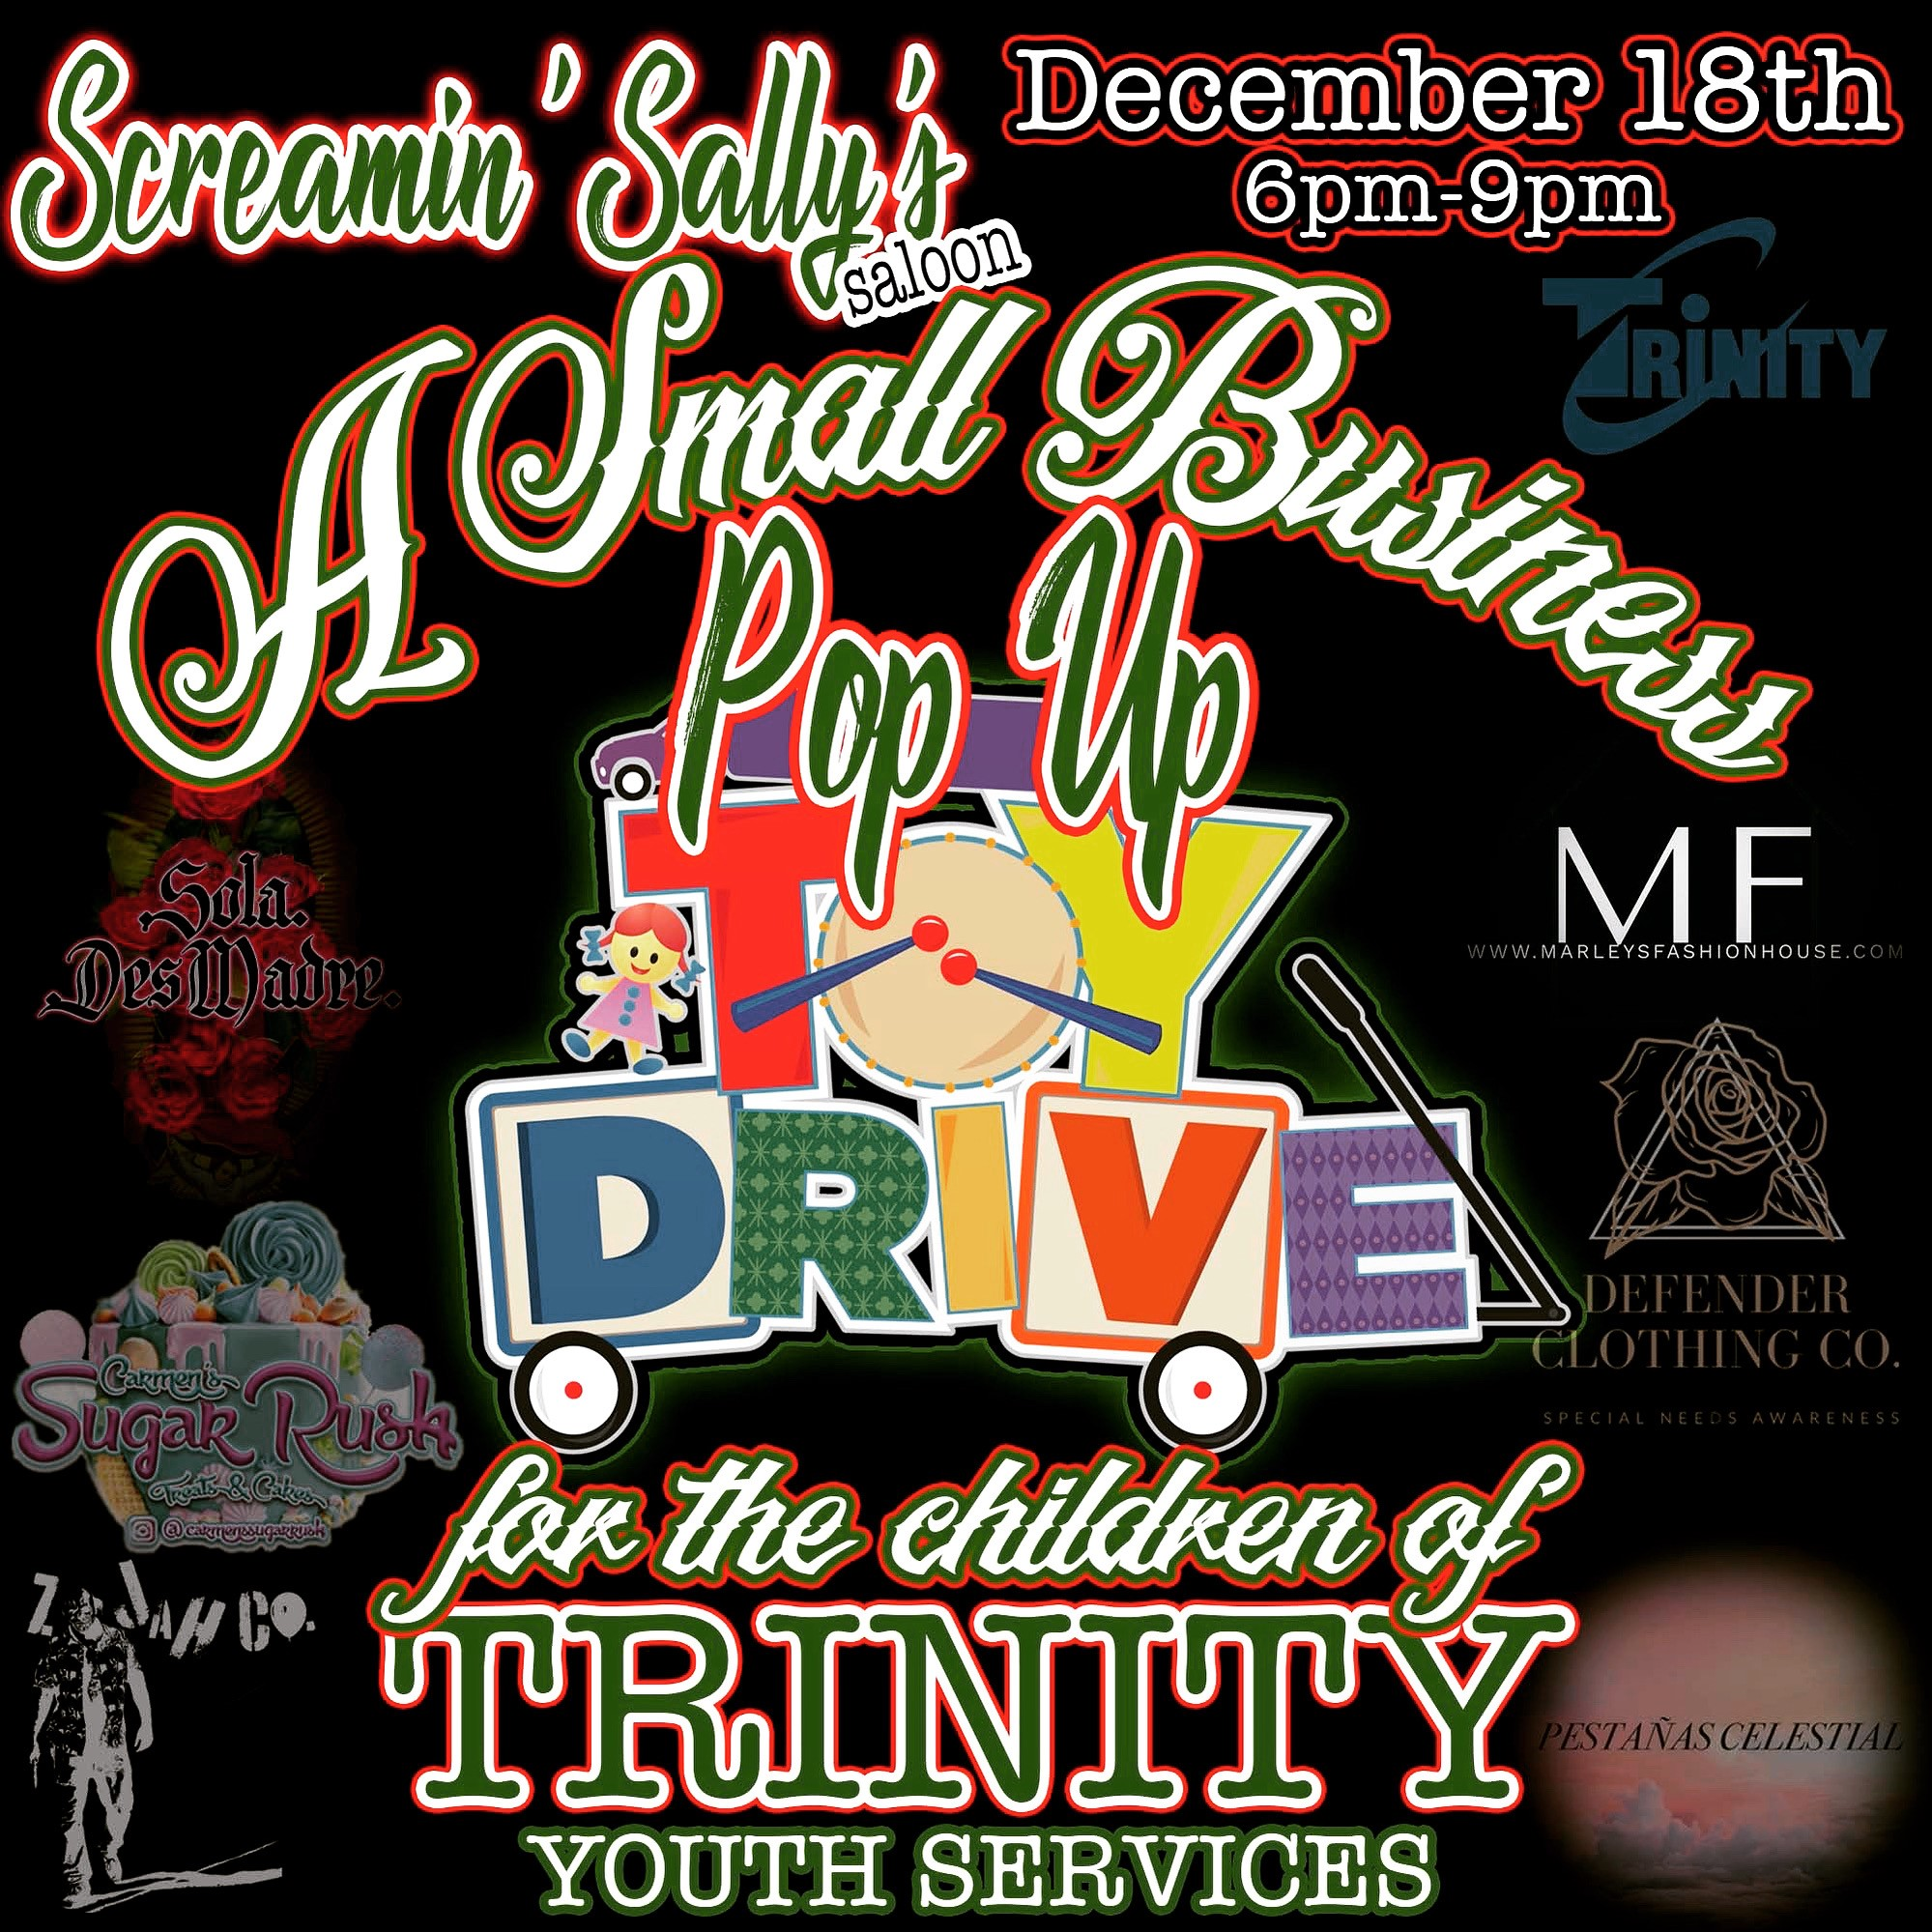 victorville toy drive